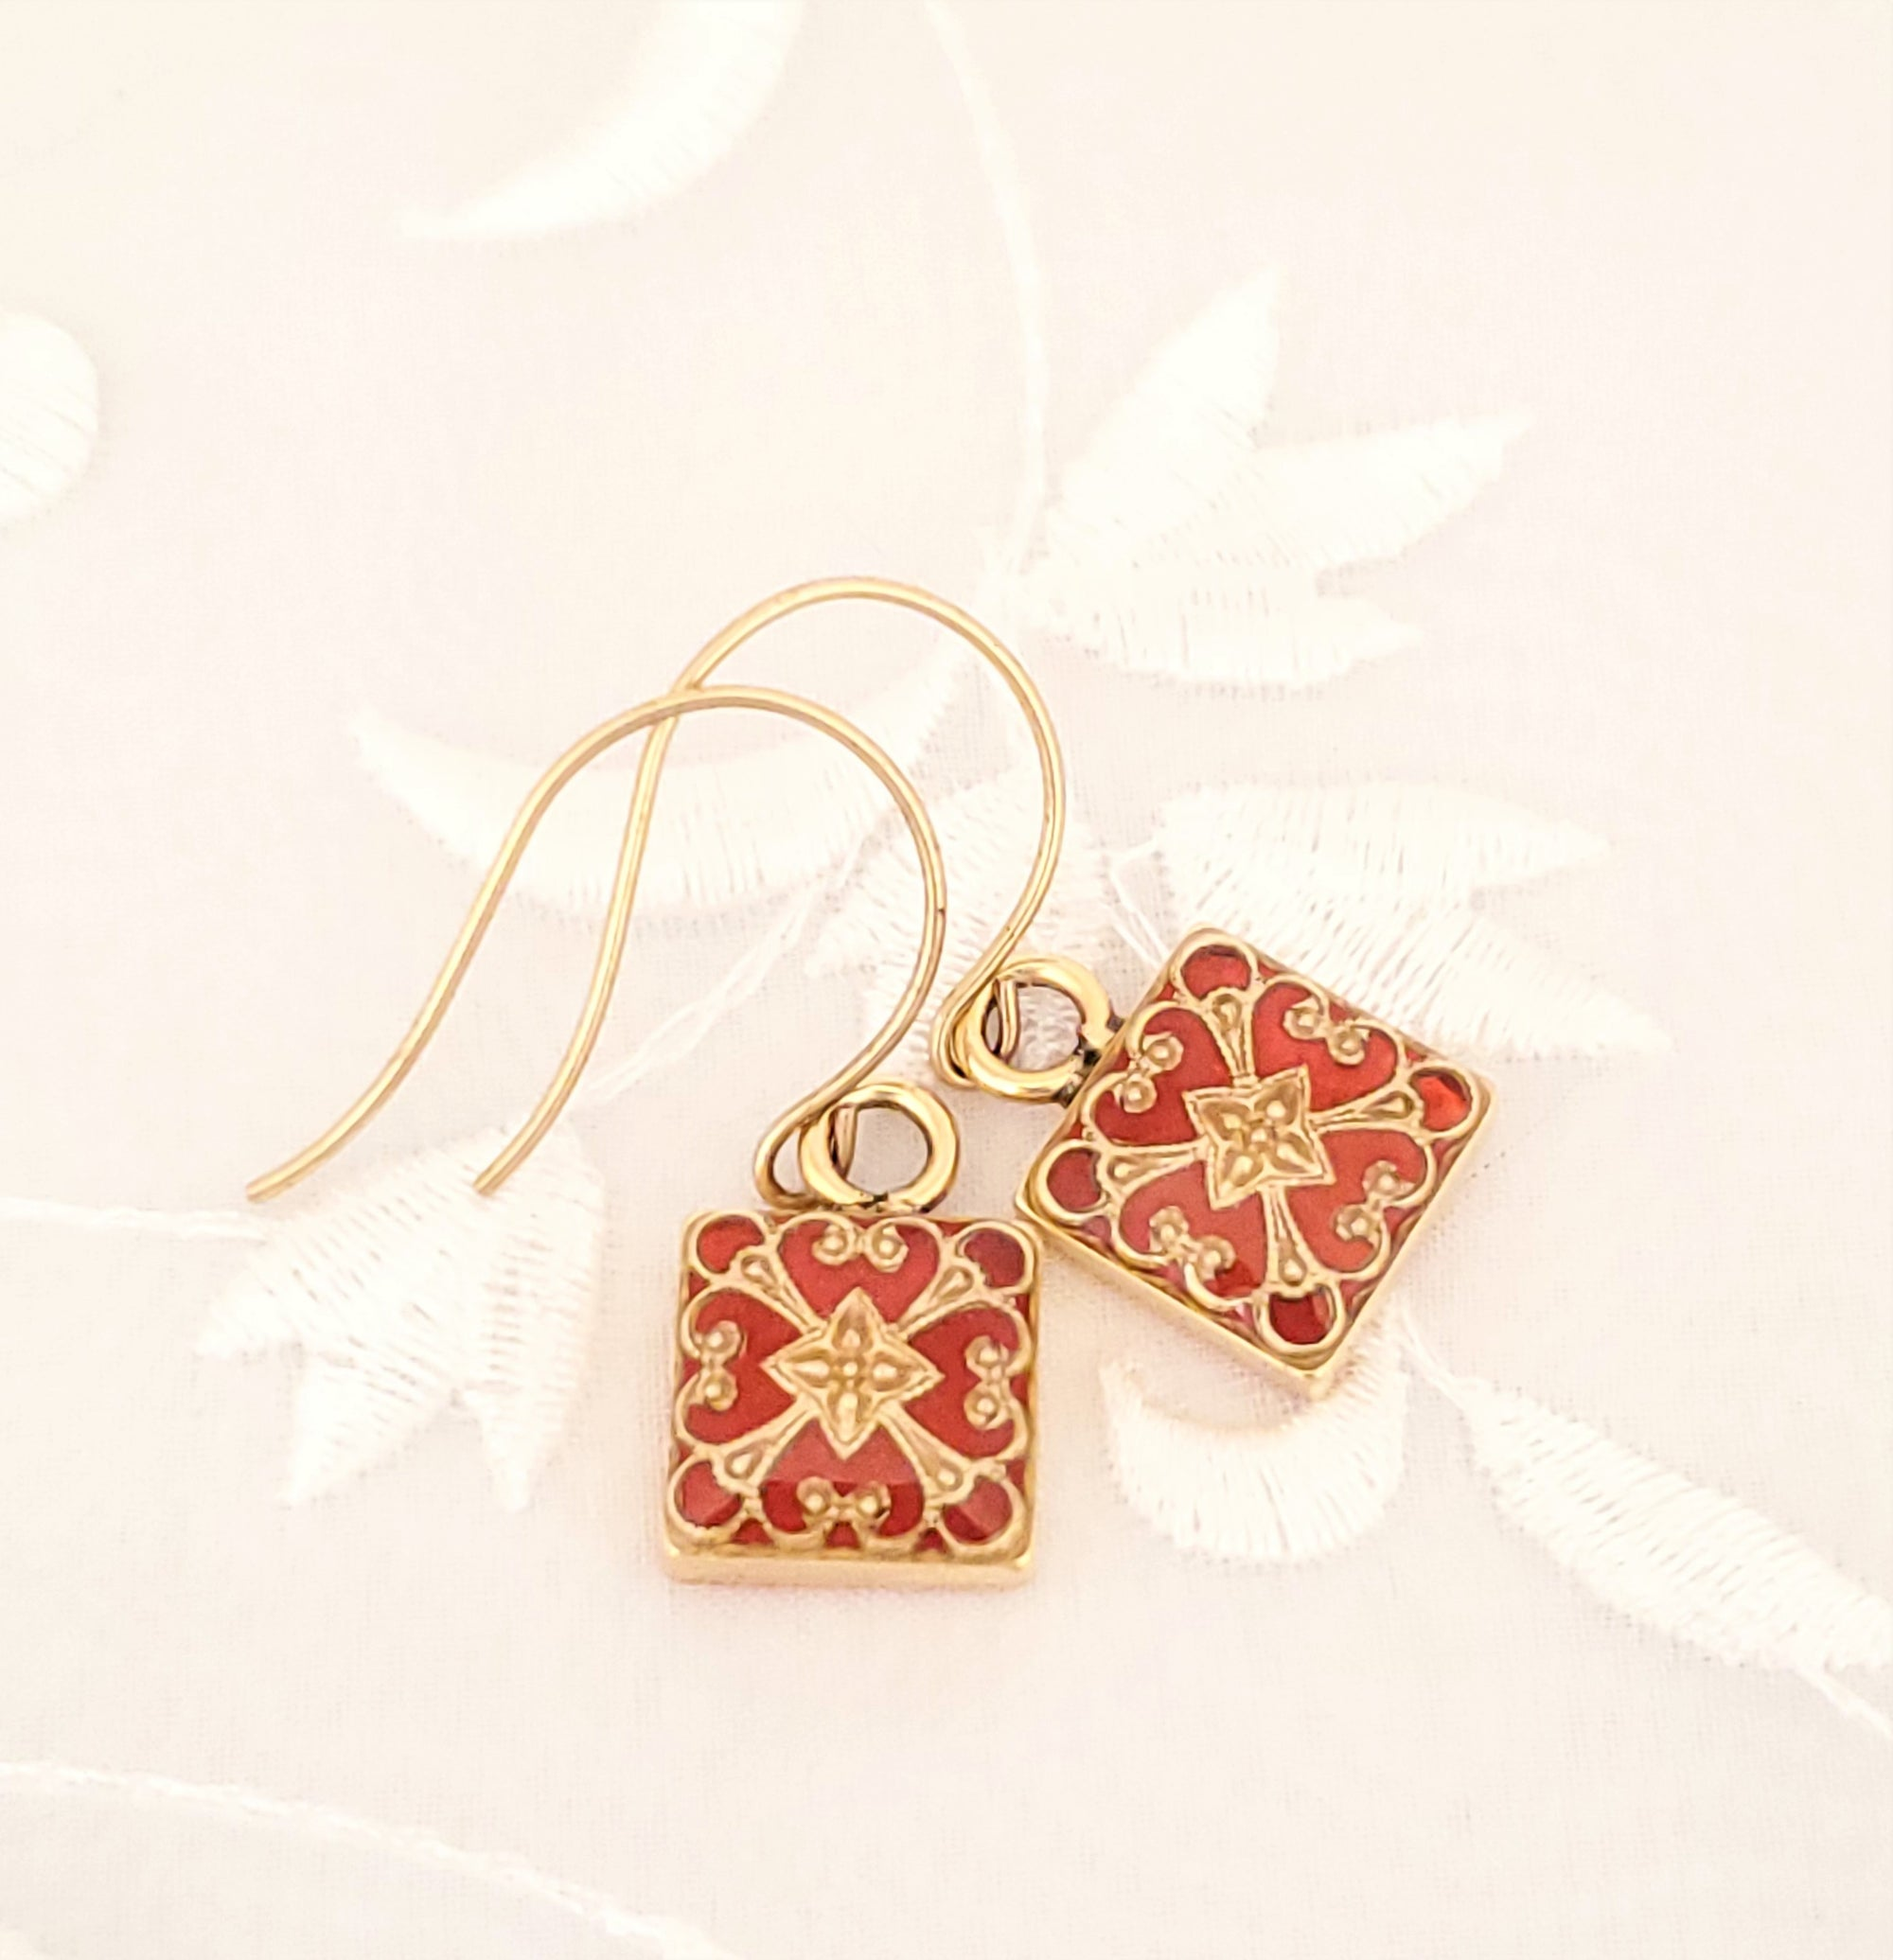 Antique Gold Square Earrings with Filigree and Orange Resin